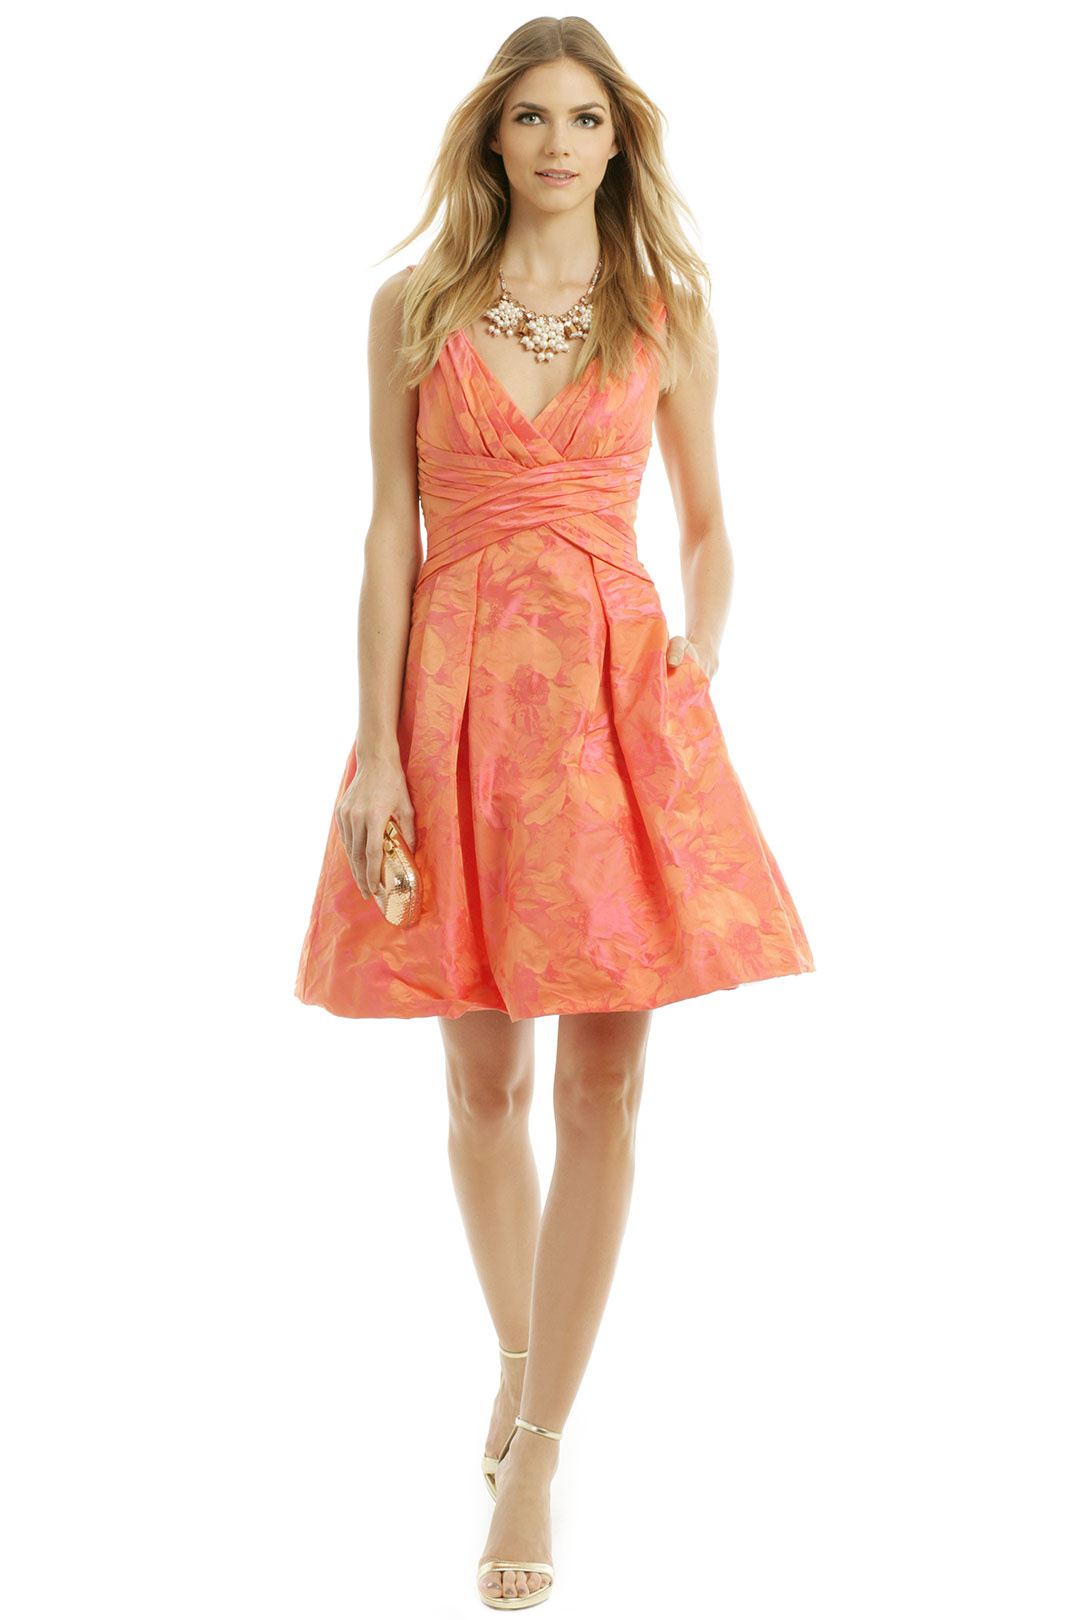 Strutting in style nancy mangano 39 s fashion style beauty for Fashionable dresses for wedding guests